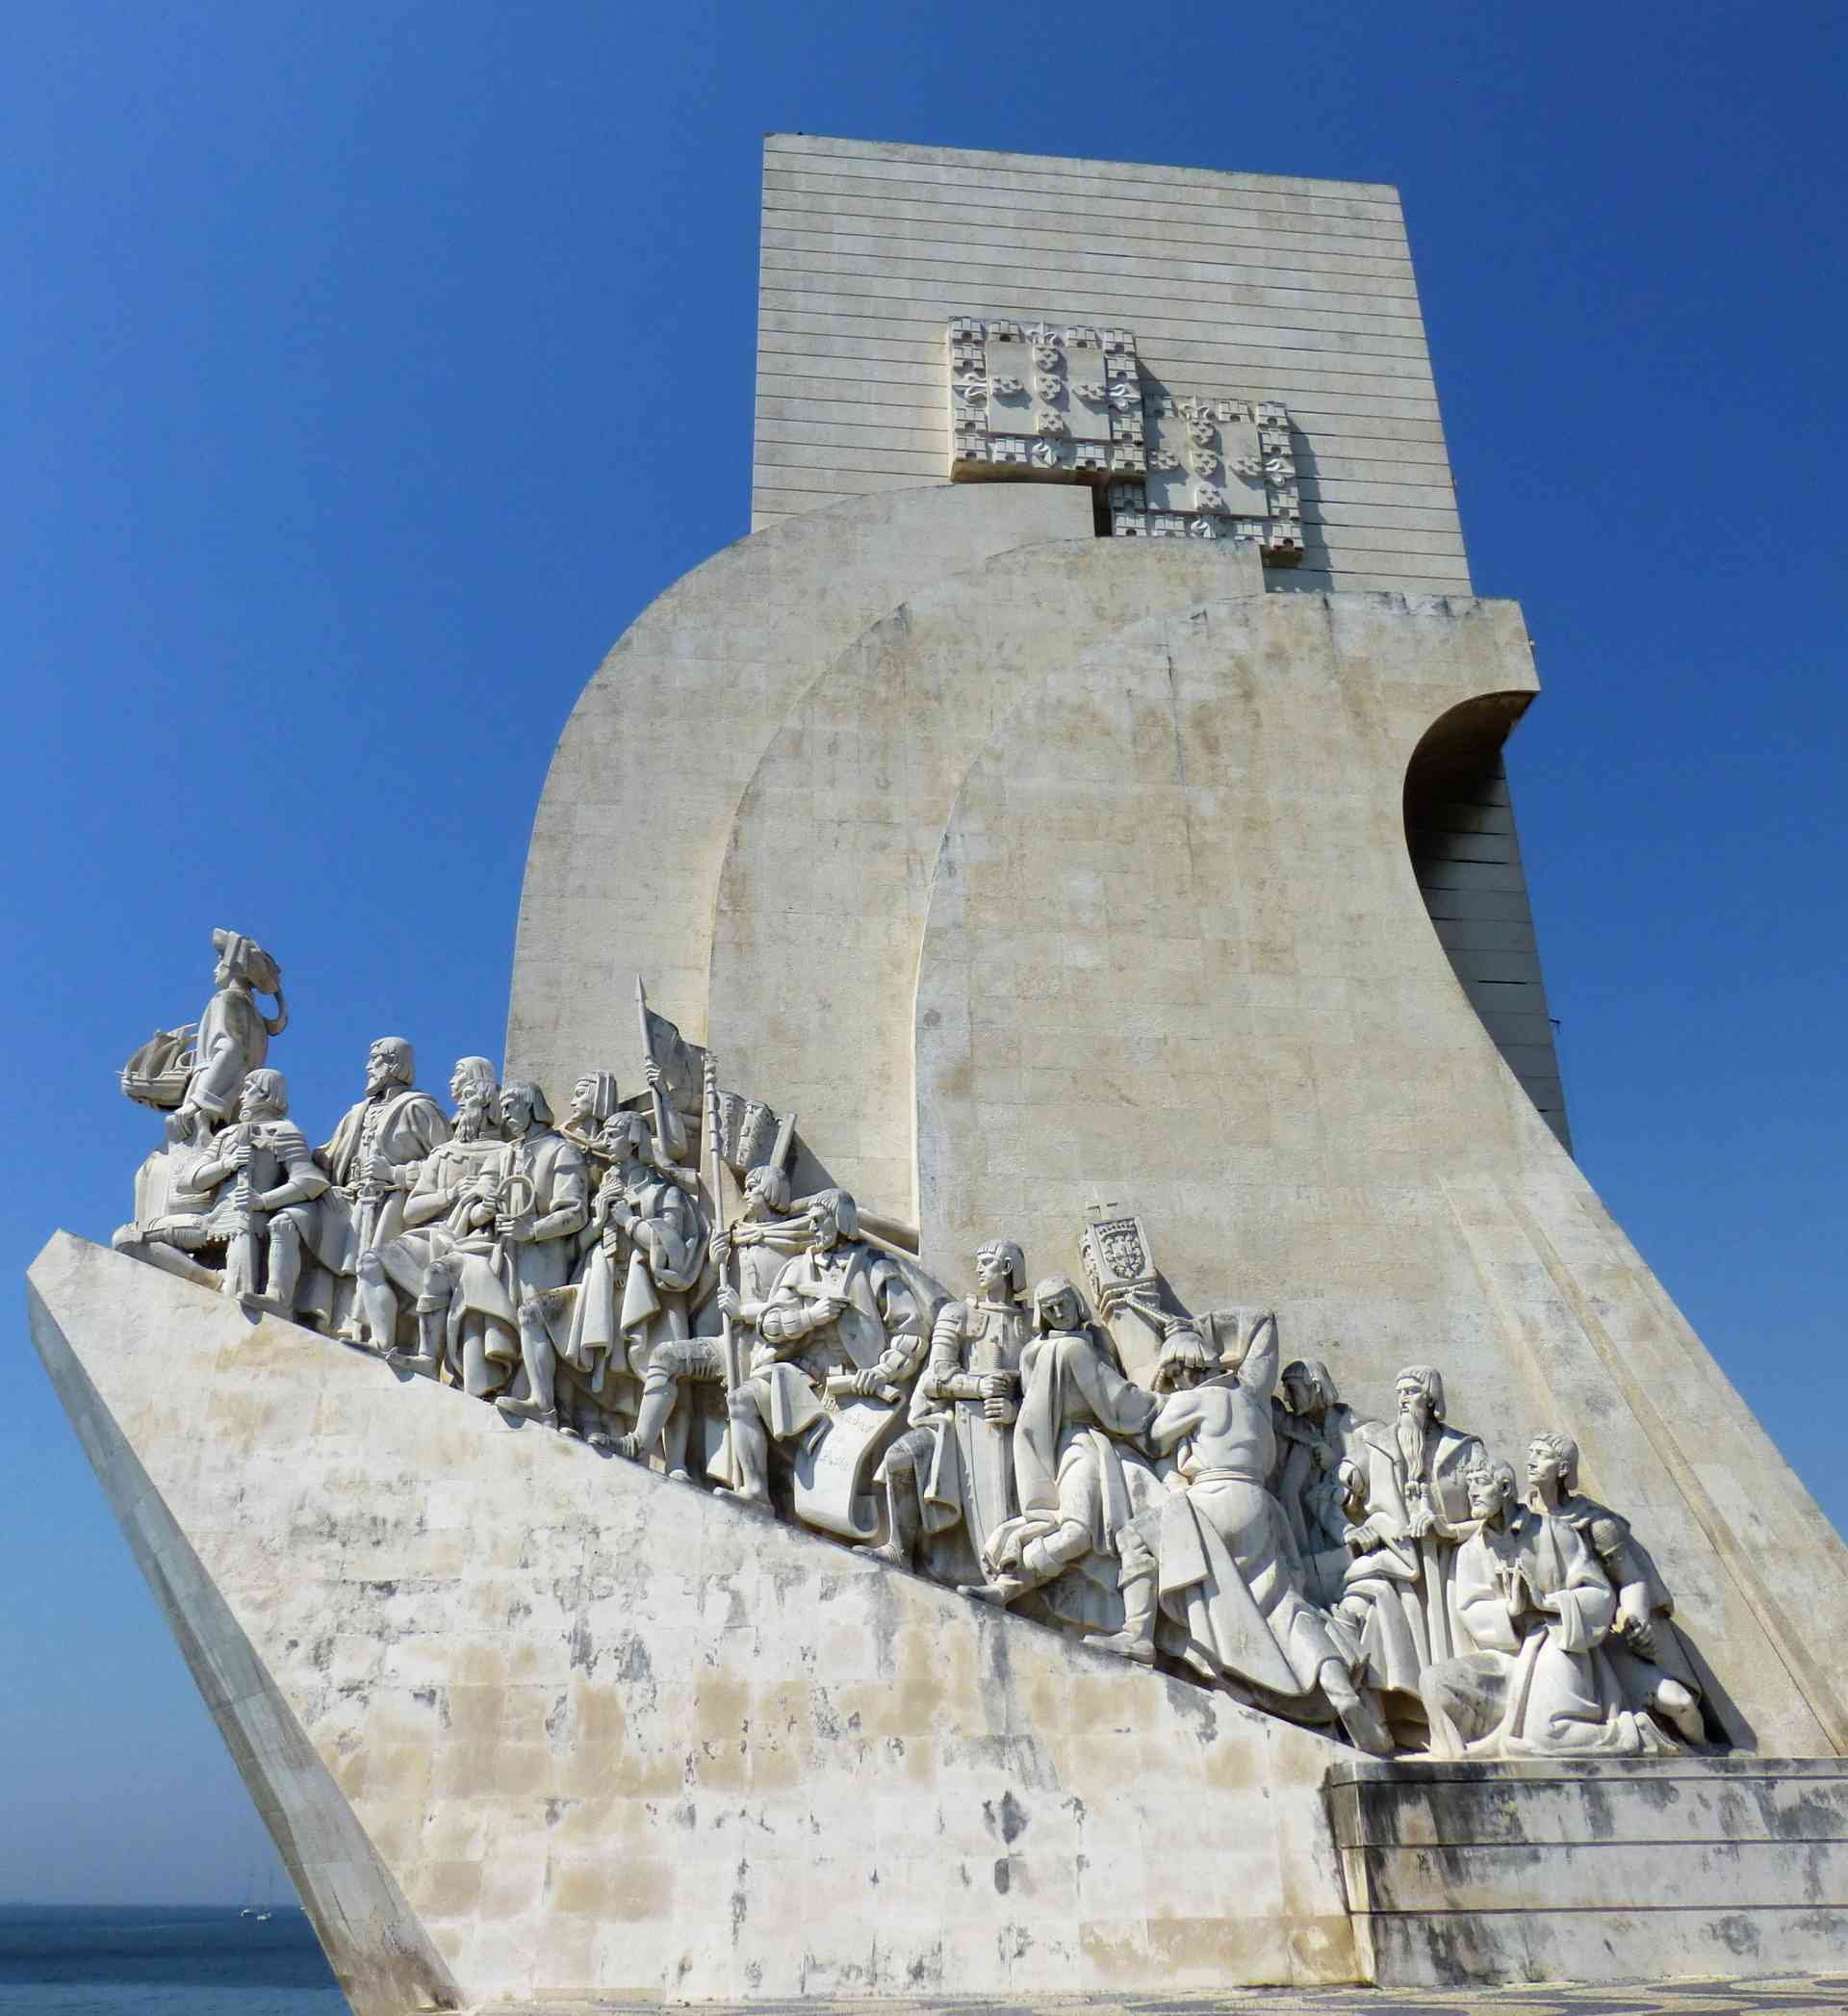 Monument to the Discoveries in Lisbon, Portugal by Dennis Bunnik